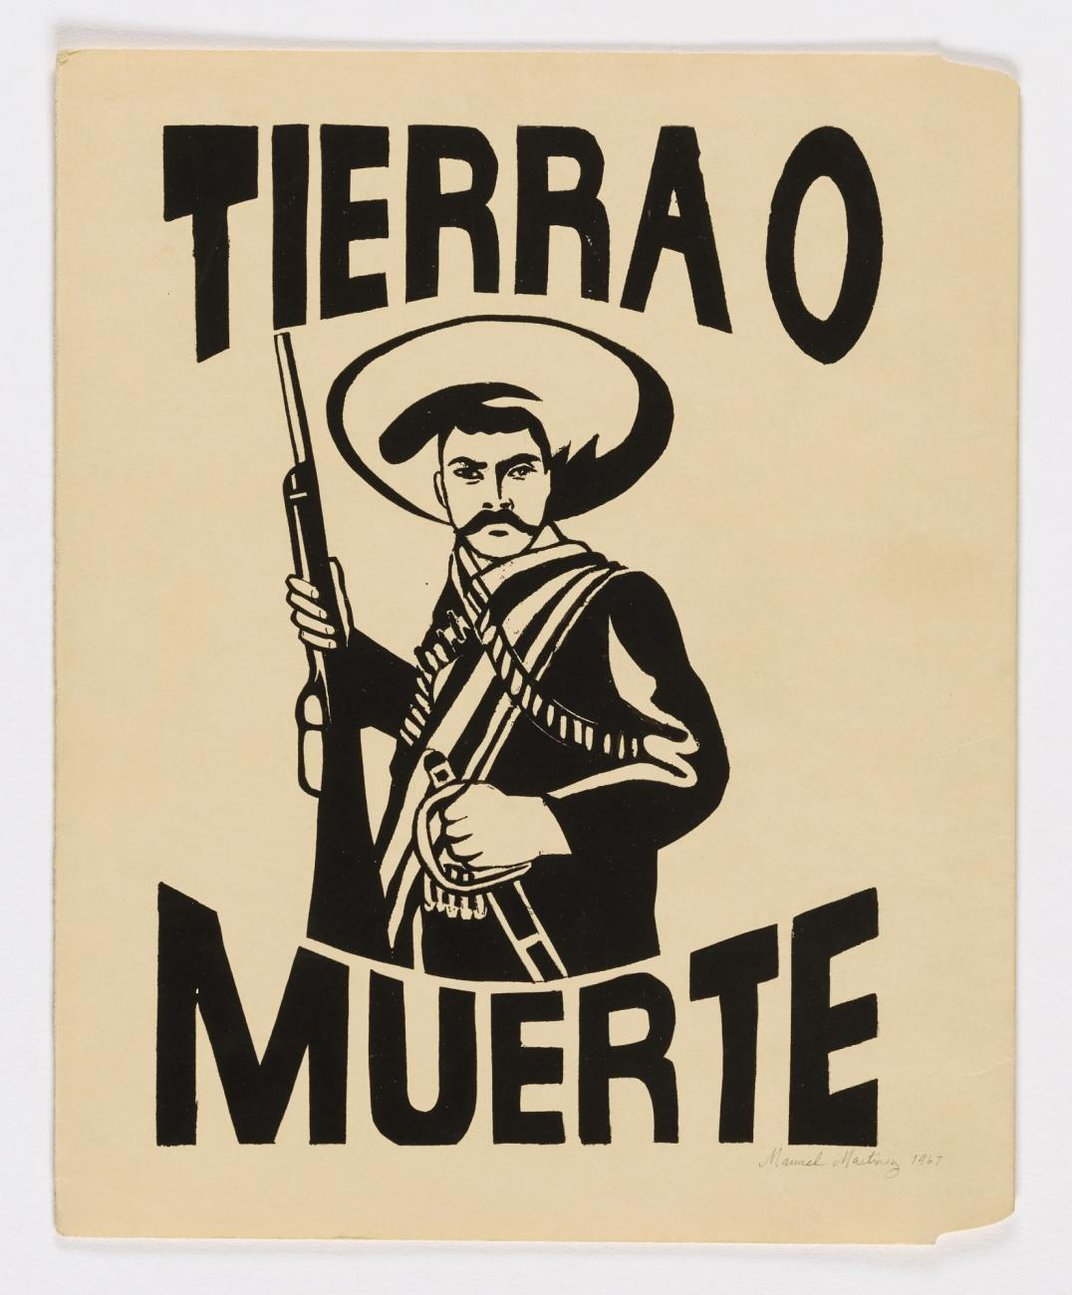 """Print of a man wearing a hat, holding a gun with the words """"tierra o muerte"""" around him."""